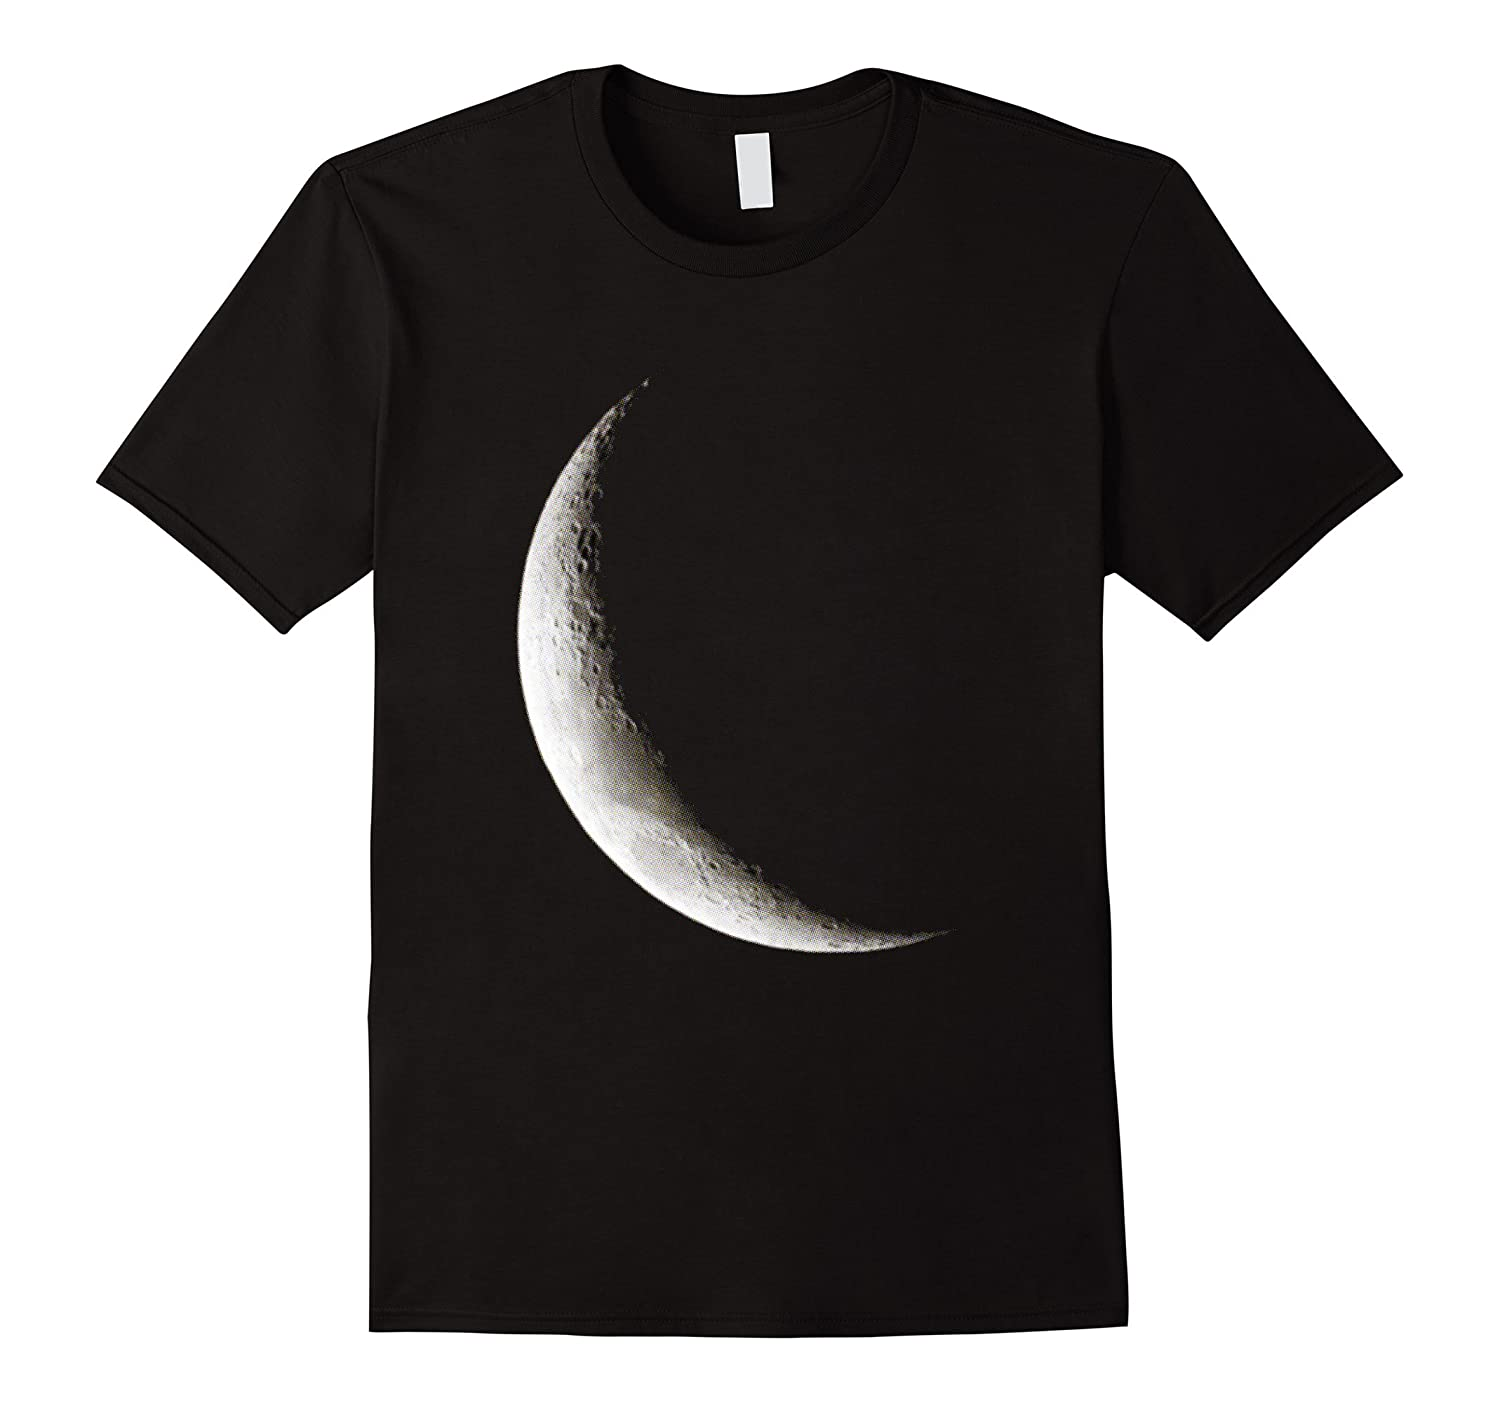 Awesome Luna Half Moon- T-Shirt - Mens & Womens Sizes-FL